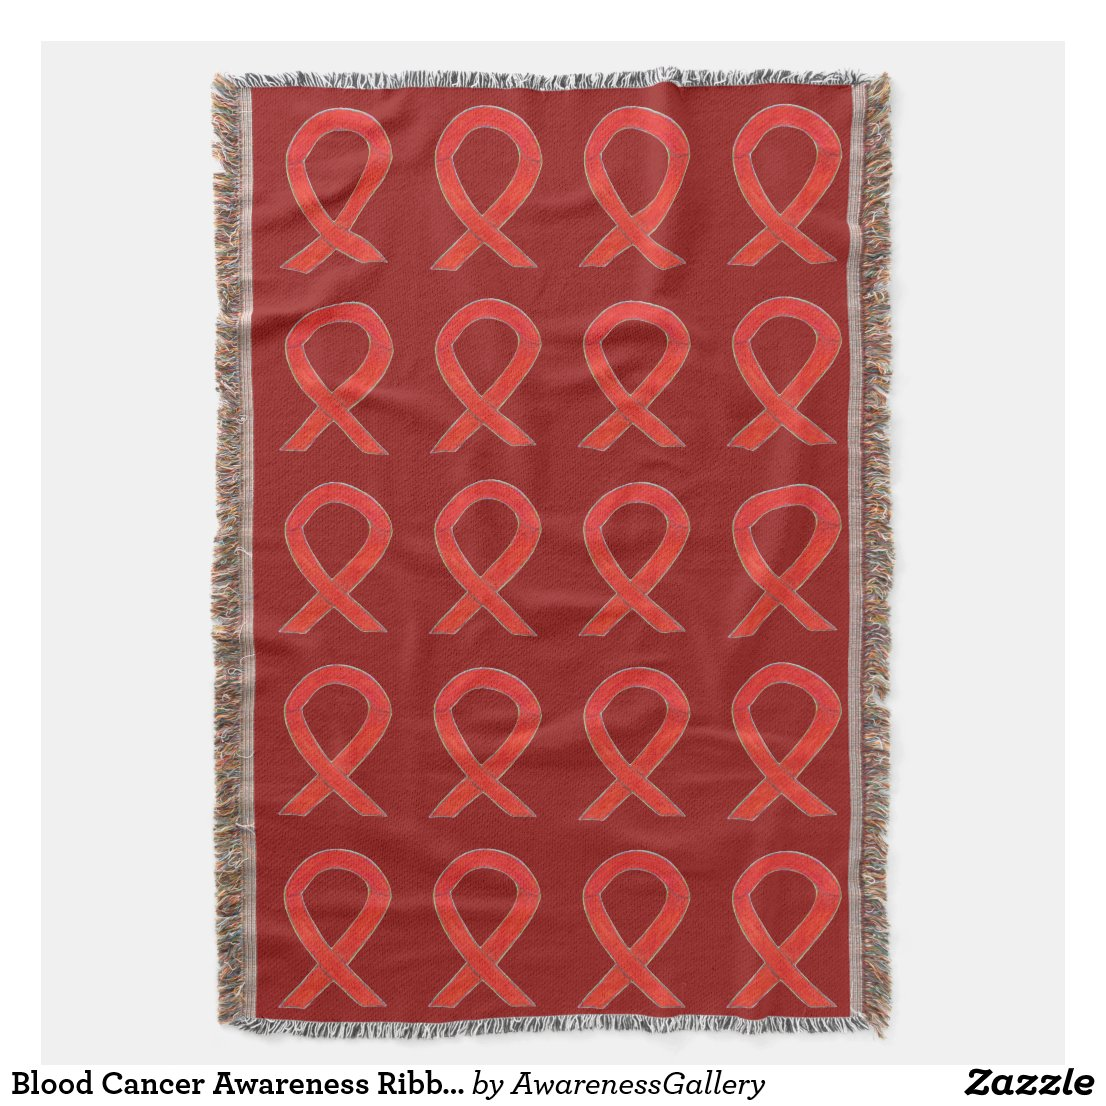 Blood Cancer Awareness Ribbon Art Throw Blanket